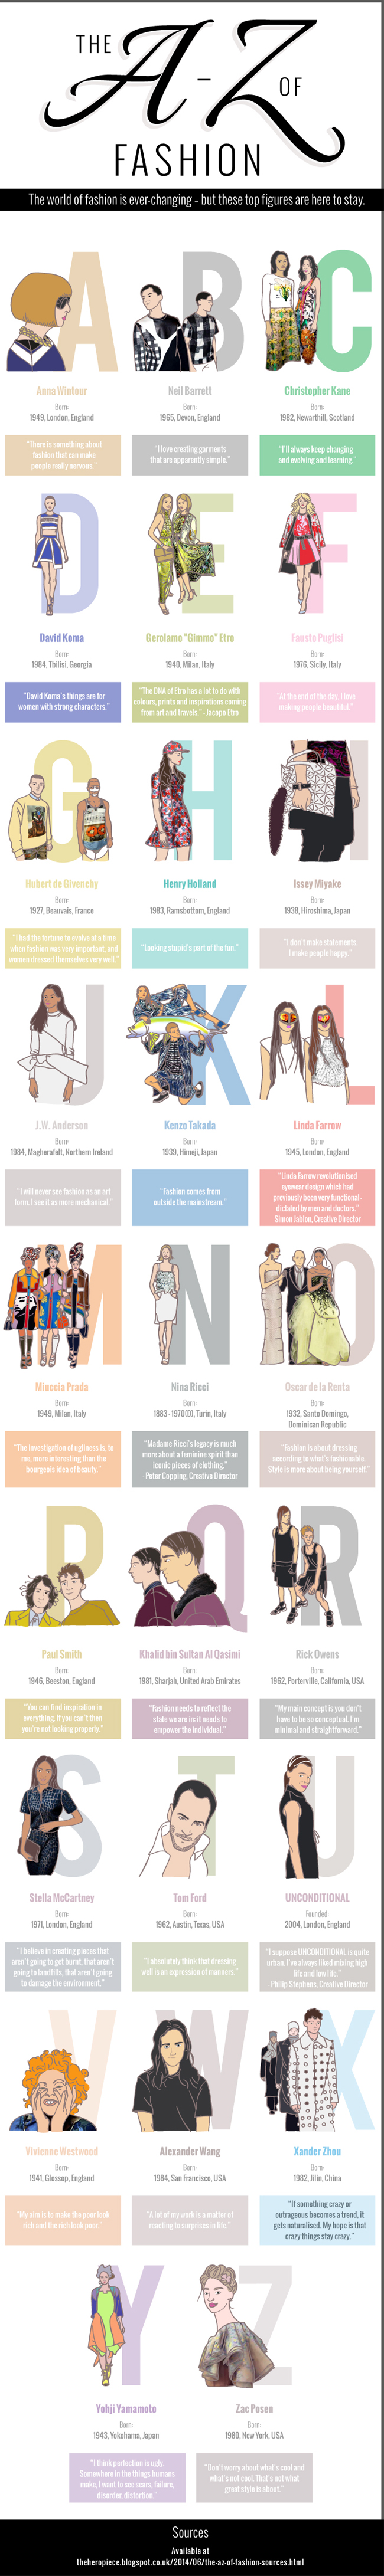 a-to-z-of-fashion